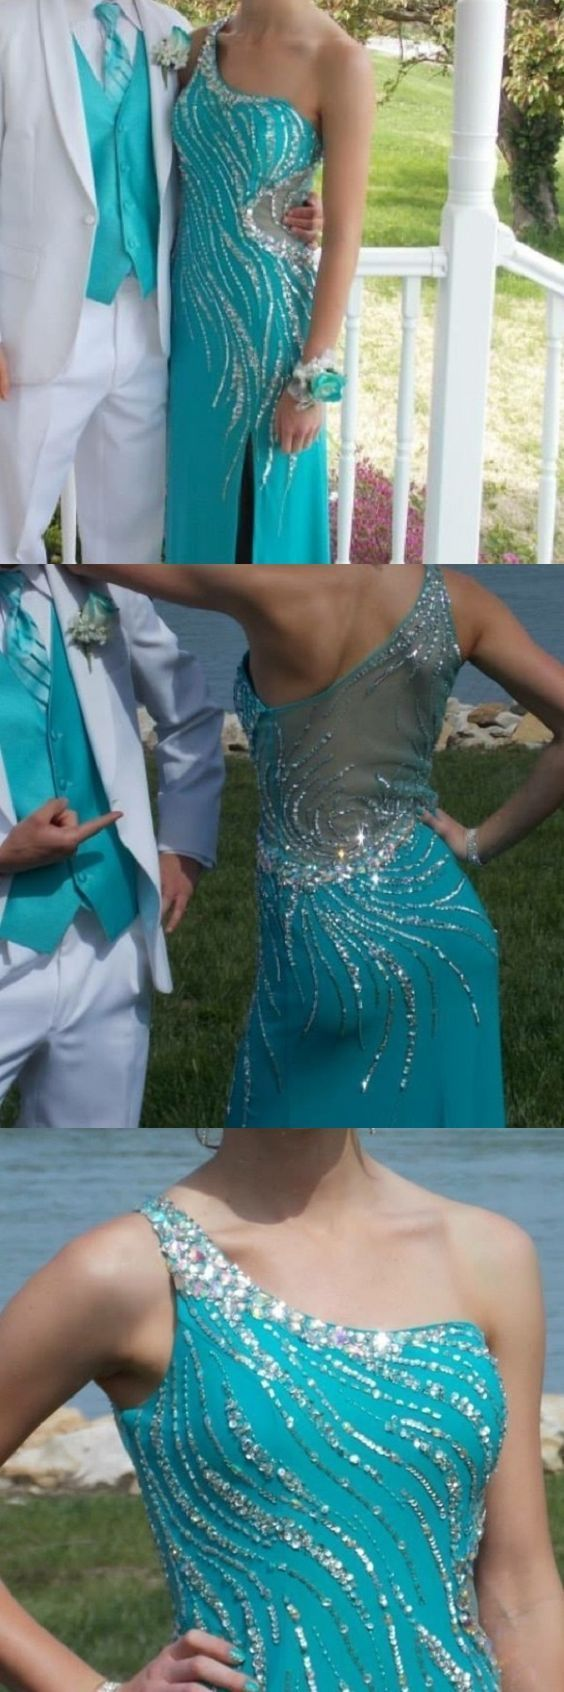 Blue Prom Dresses,Mermaid Evening Dresses,One Shoulder Prom Dresses,Beading Prom